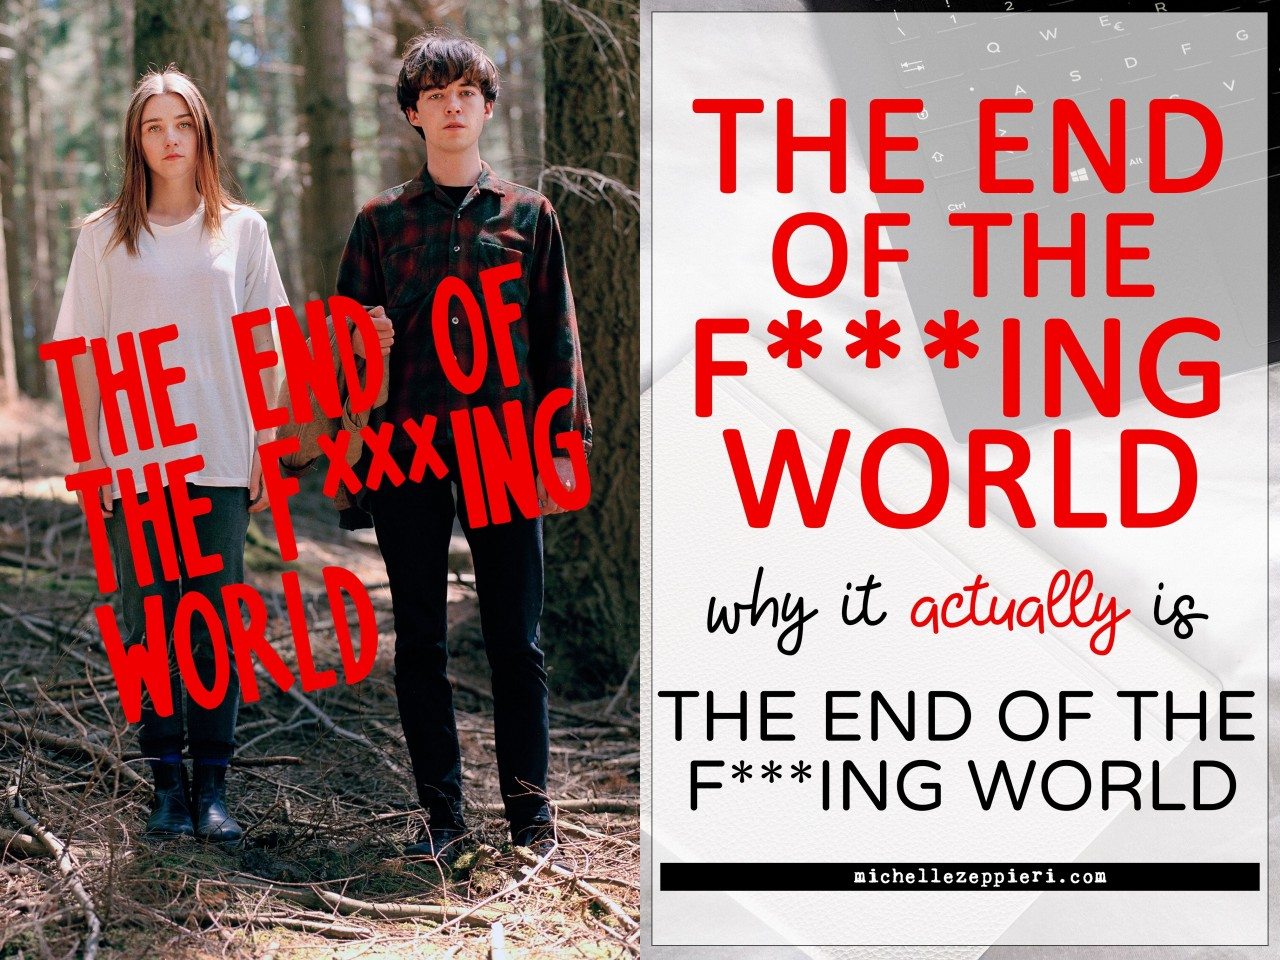 Постер The End Of The F***ing World - Конец ***го мира